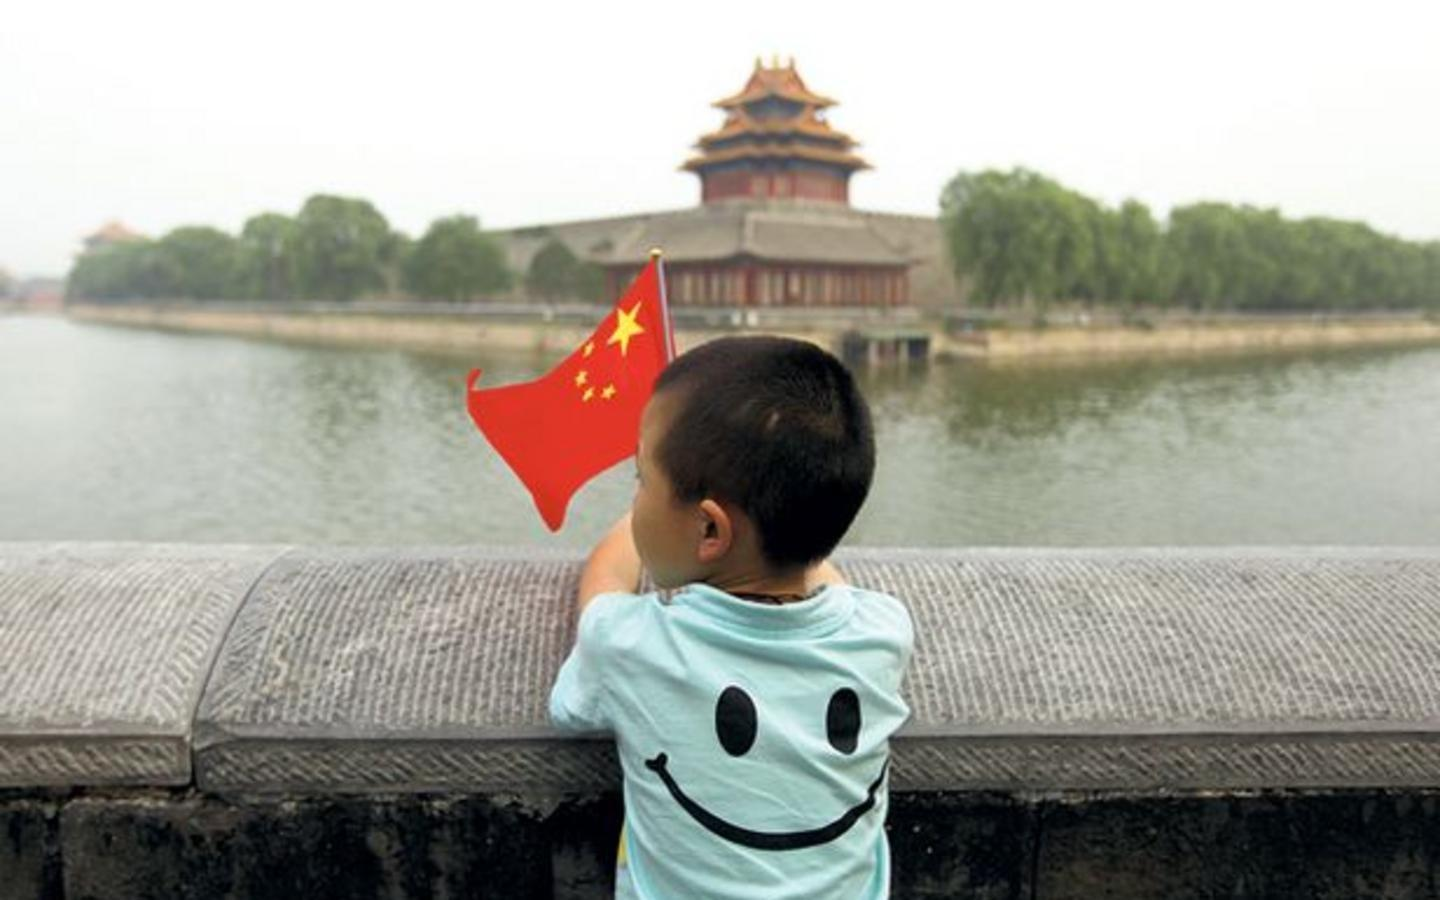 The end of the One Child Policy brings many concerns for the nation's future.